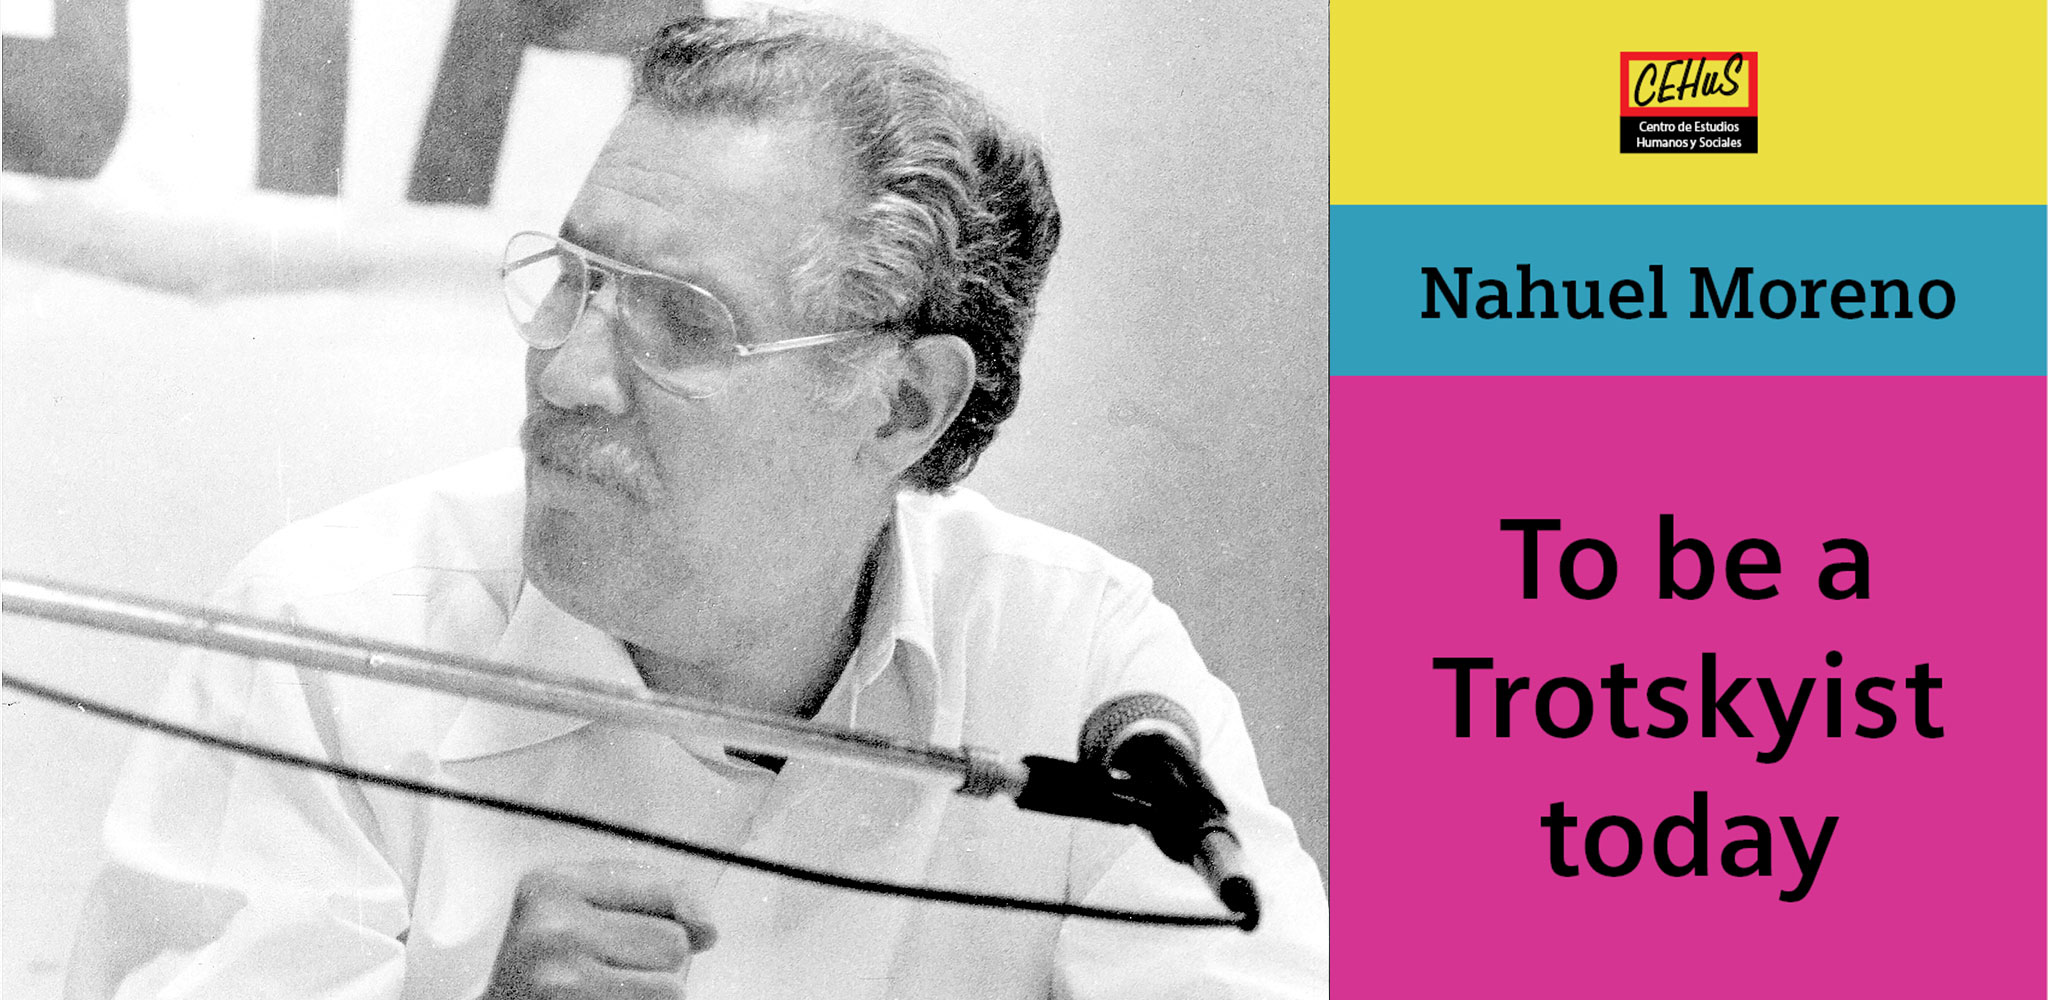 TO BE A TROTSKYST TODAY (1985)